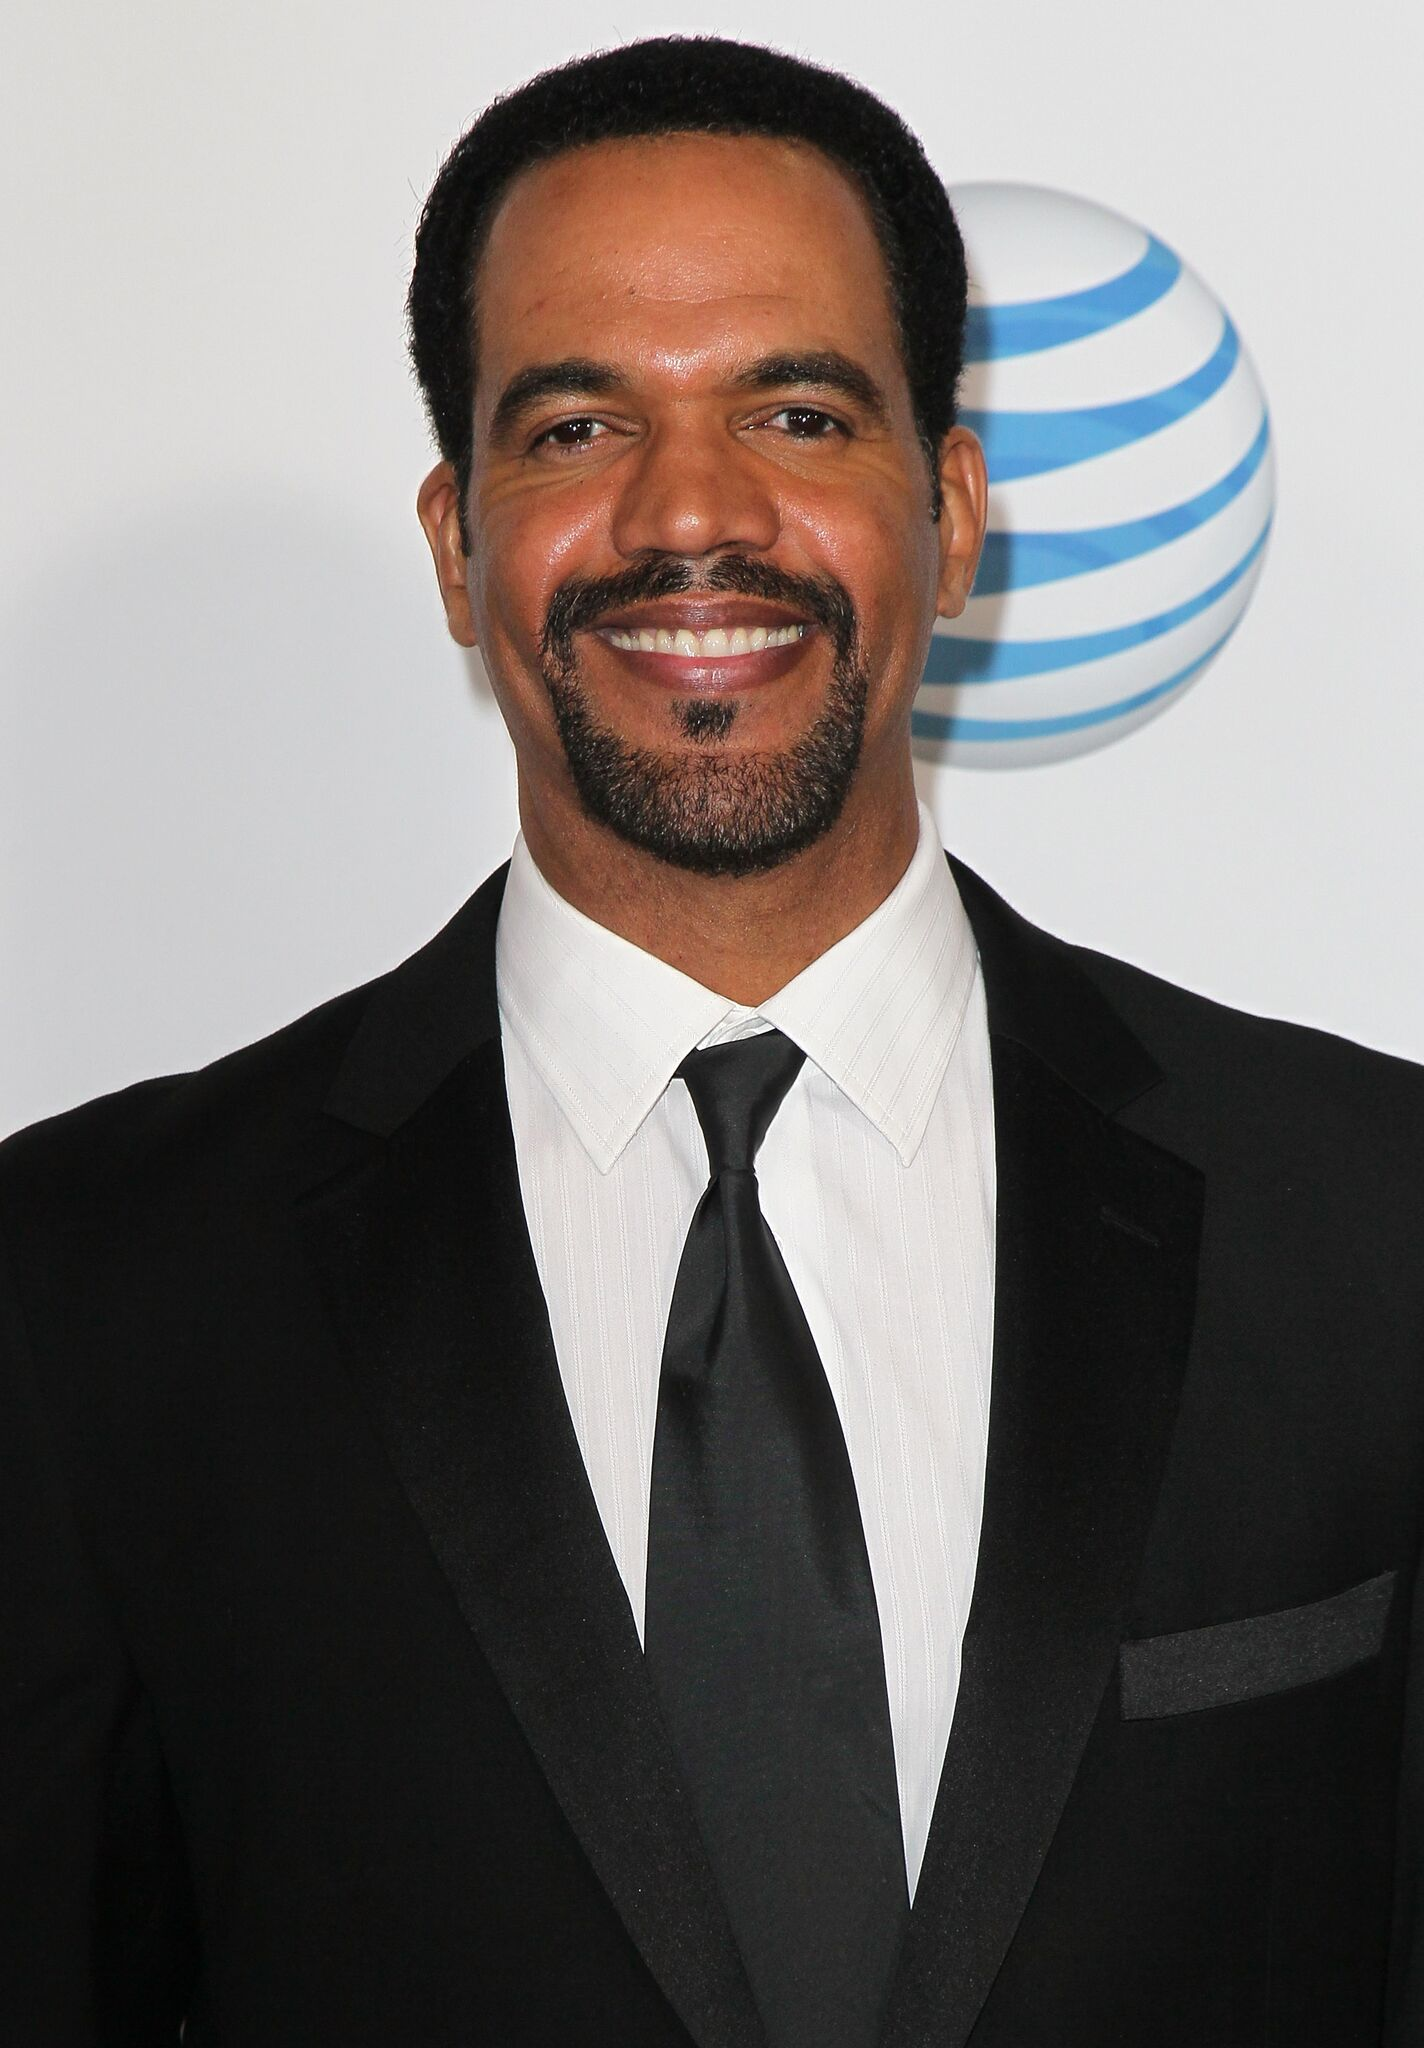 Kristoff St. John poses for picture at red carpet event | Getty Images